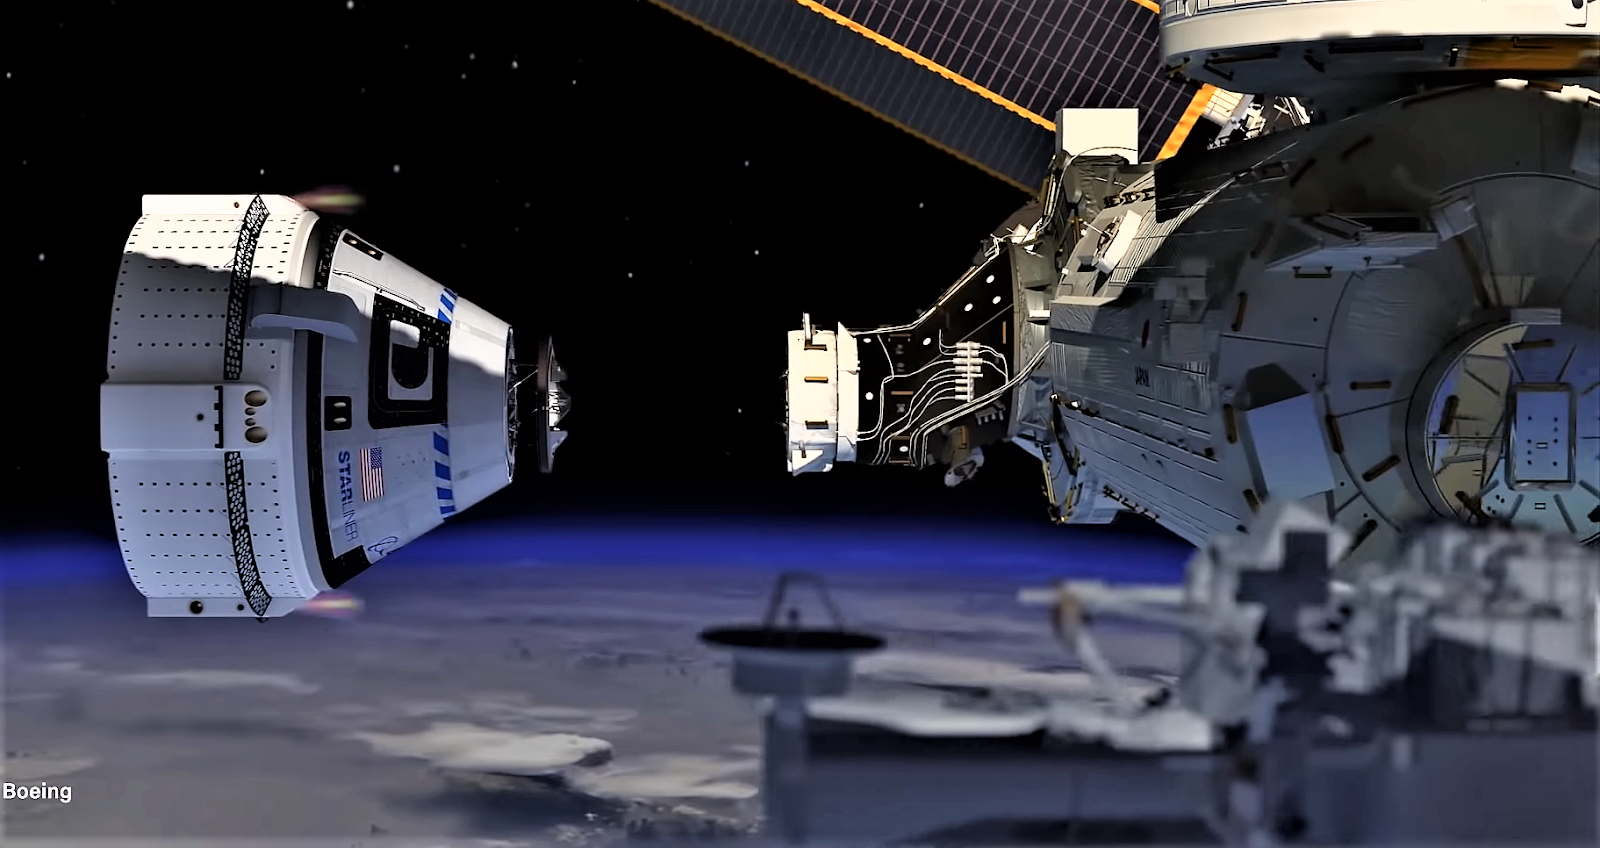 Starliner spaceship will not be able to dock with the ISS and will return to Earth.